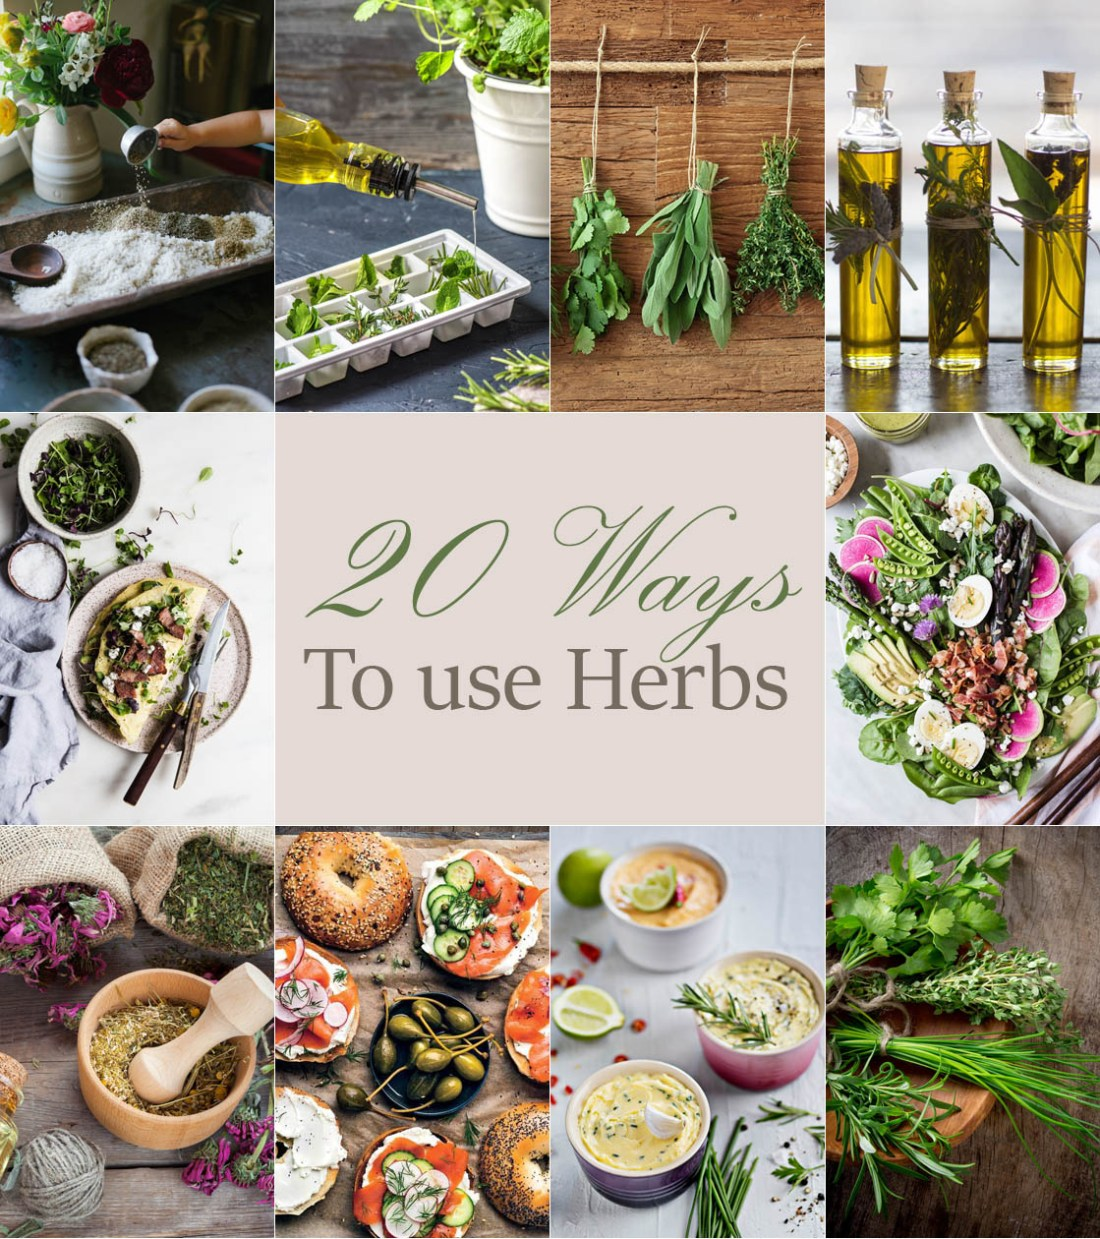 20 Ways to Use Herbs